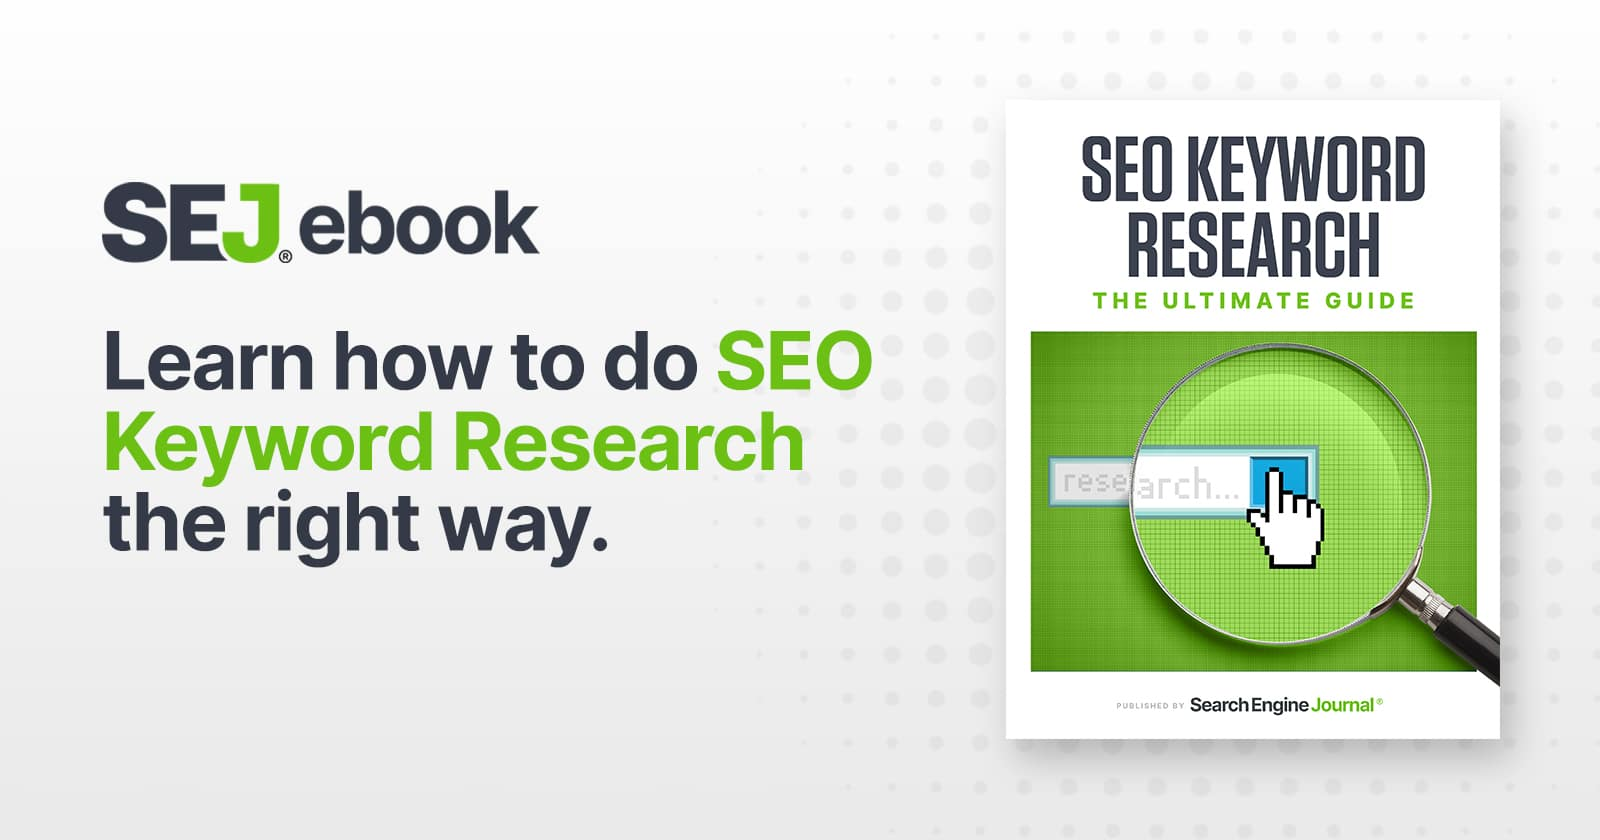 SEO Keyword Research: The Ultimate Guide [Ebook] via @sejournal, @MrDannyGoodwin